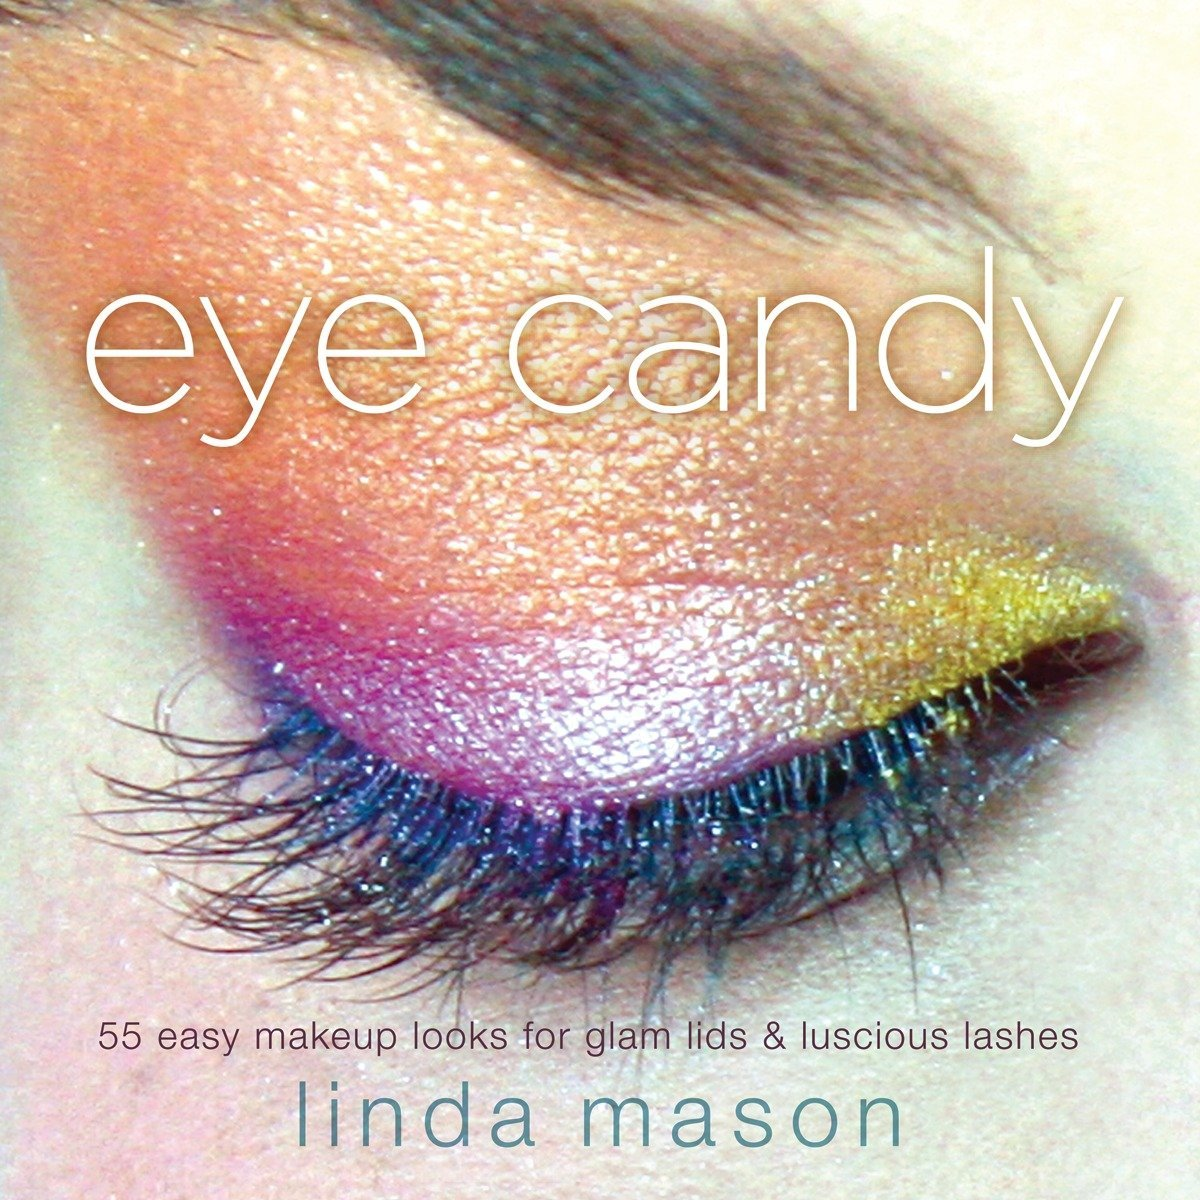 Eye Candy 55 Easy Makeup Looks For Glam Lids And Luscious Lashes